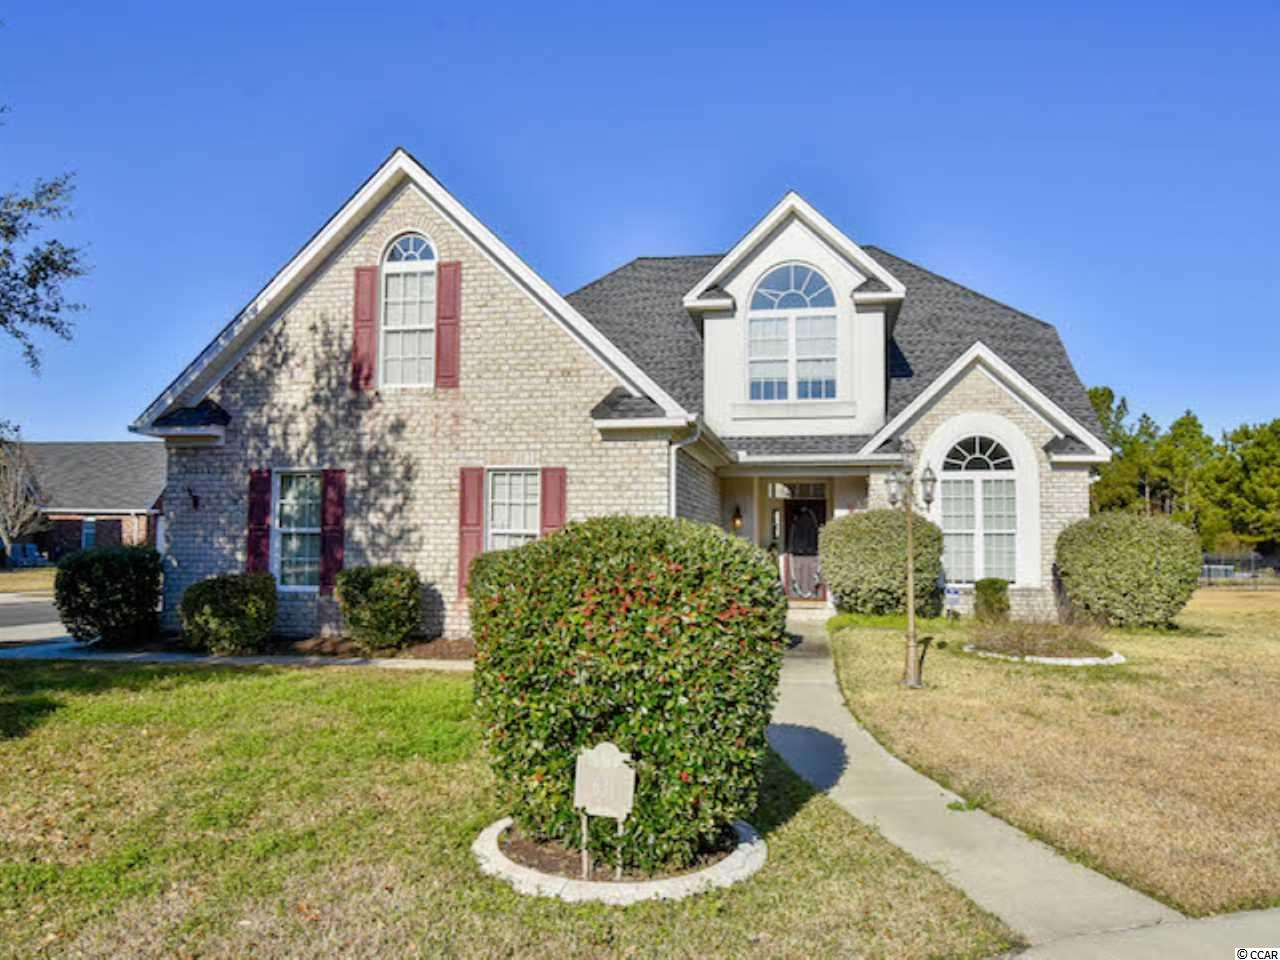 Welcome home to this spacious 4 bedroom, 3 1/2 bath all brick home in the lovely Covington Lake community of Carolina Forest! As you enter you will instantly notice the soaring ceiling and large arched window providing plenty of natural light to the living space. The large kitchen has endless Corian counter space, abundant cabinetry, breakfast bar,desk area, and a cozy in-kitchen dining area. Special interior spaces include a Carolina room, a versatile room that can be used as a den, office or media room, and a beautiful loft sitting area at the top of the stairs. The Master suite has an elegant tray ceiling, walk-in closet and a private bath with dual vanities, whirlpool tub, and large shower. The second-floor bedrooms share access to a full bath. This home features 15 closets, third full bath in the garage, and a walk-in attic.  The outdoor tiled patio has a serene view of the tidy landscaped yard. Covington Lake residents enjoy a community pool, playground, and picnic area. The location provides easy access to major roads, just minutes from the beach and all the shopping, dining and entertainment the Grand Strand has to offer!